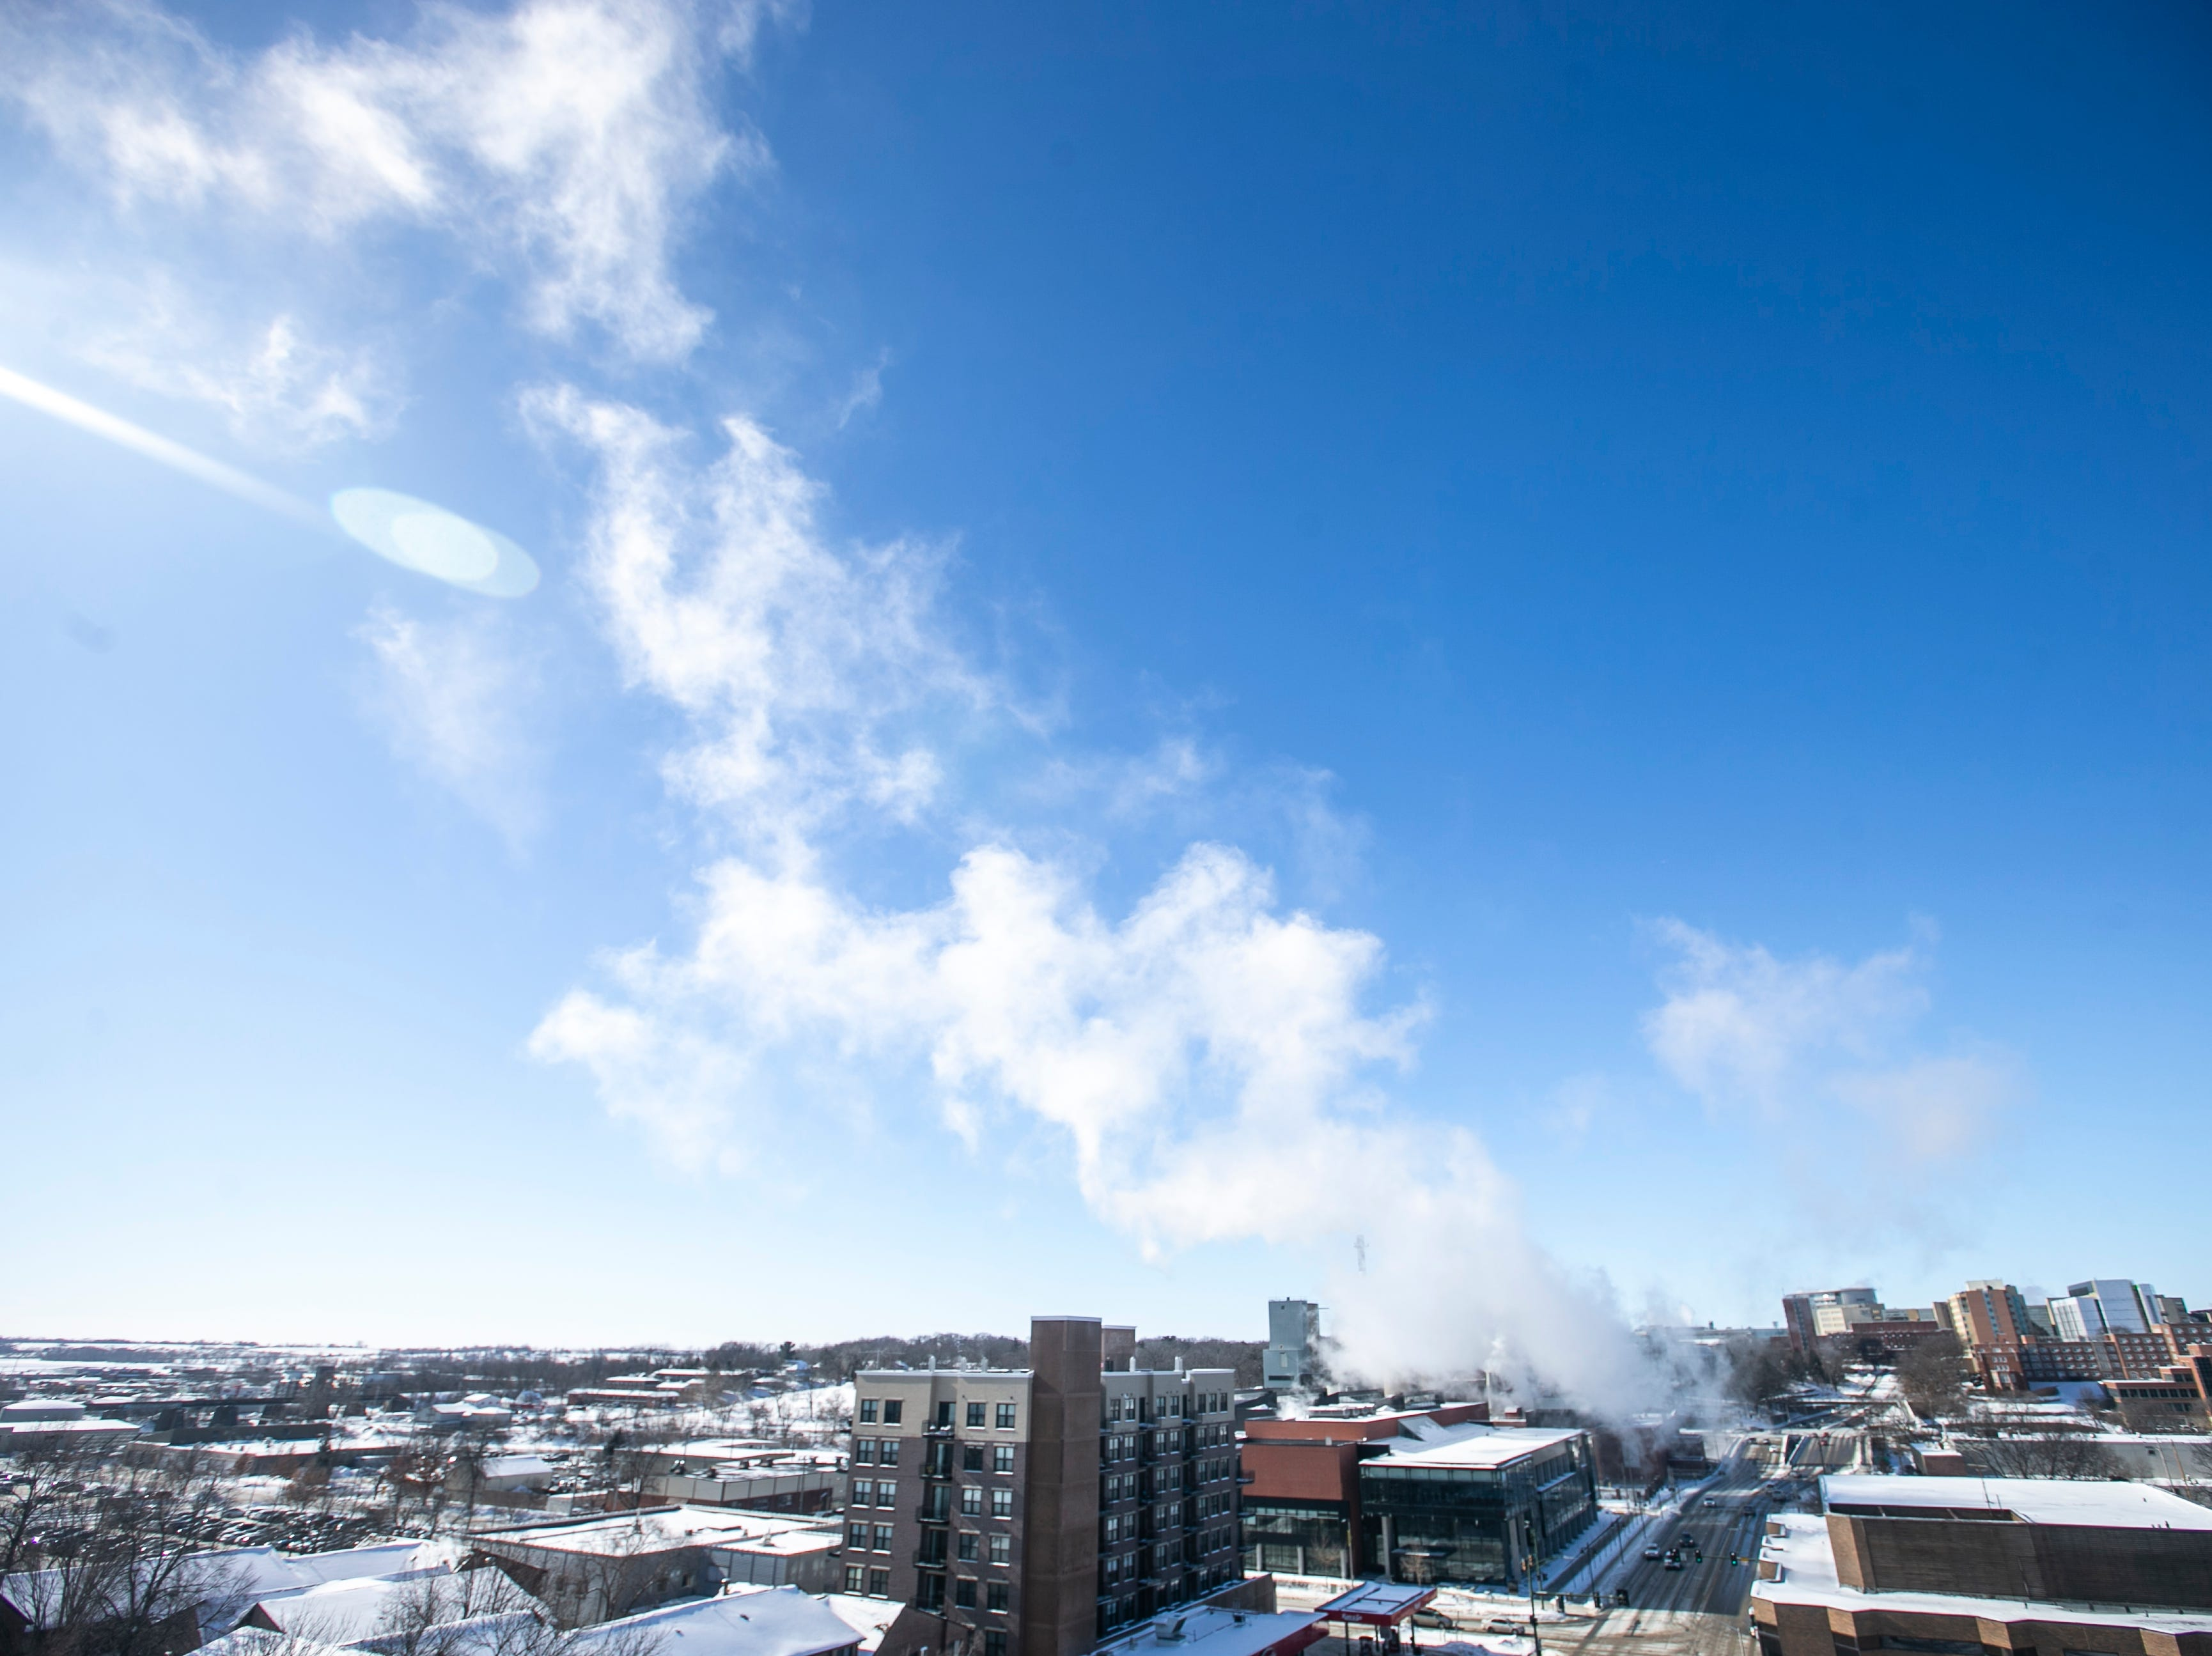 Steam flows out of the UI Power Plant on Wednesday, Jan. 30, 2019, shown from the top of a parking ramp on the corner of Capitol and Burlington Streets in Iowa City, Iowa.